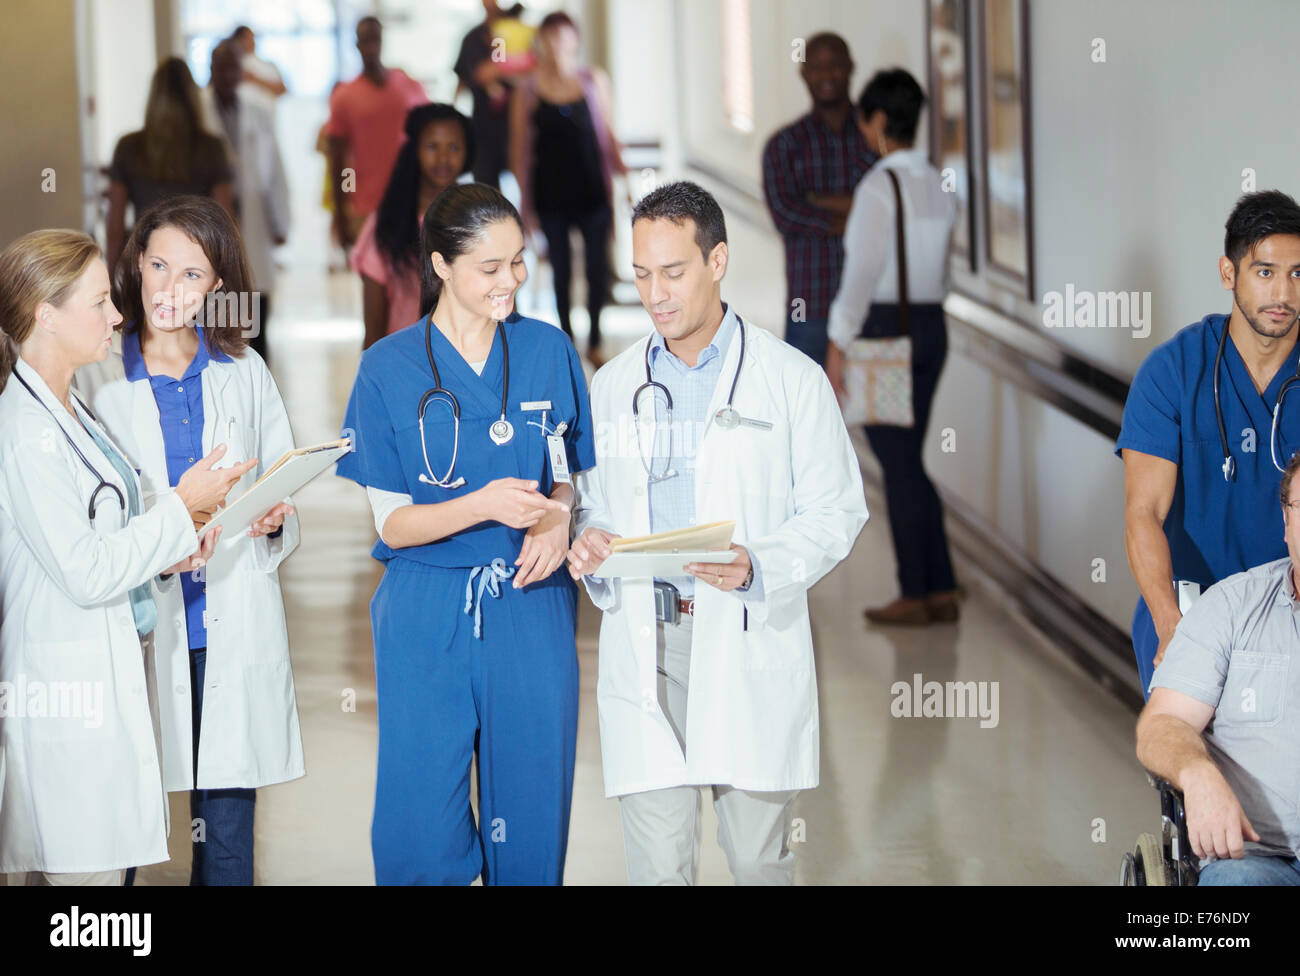 Busy Doctor Hurried Nurse advise